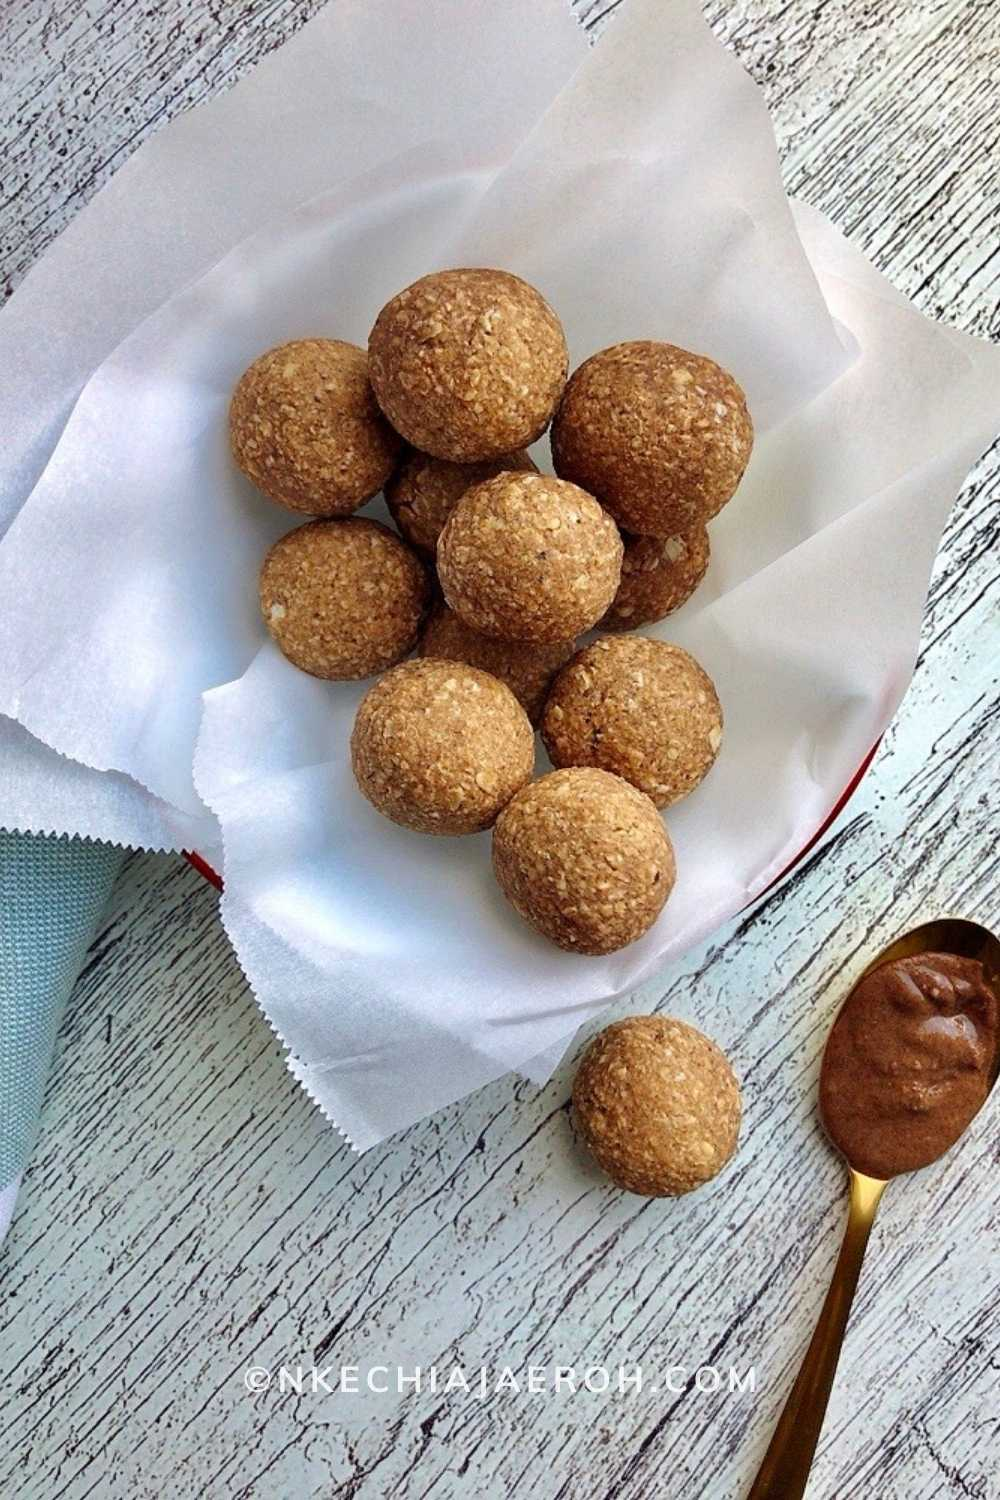 These warm and delicious healthy energy bites are just perfect for pre and post work out snacks. You can have them on the go, and the kids love them! This is the snack you need for all year round. These healthy plantain power balls are equally great appetizers, side dishes, and even dessert.